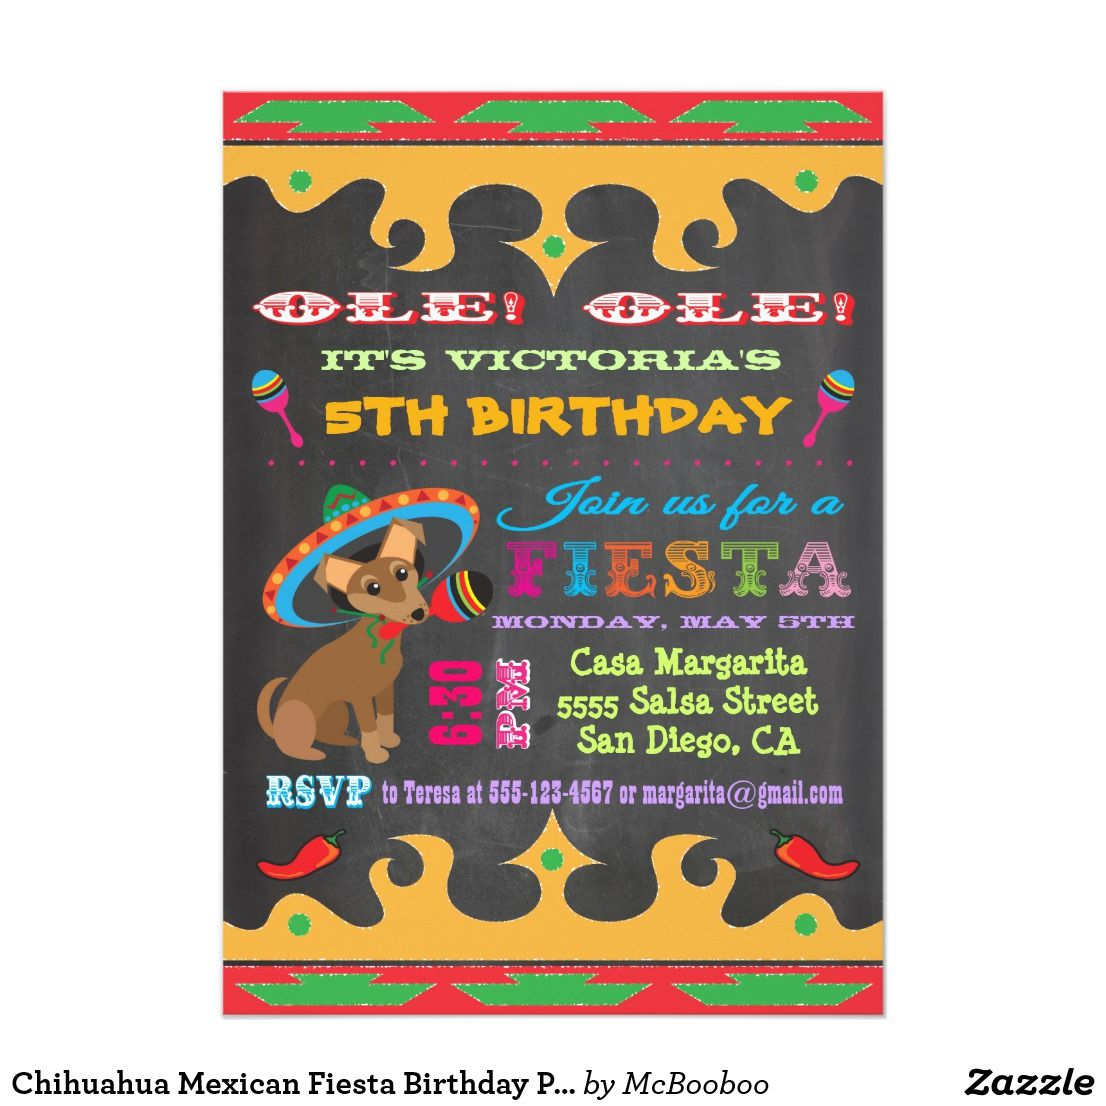 Chihuahua Mexican Fiesta Birthday Party Invitation ...